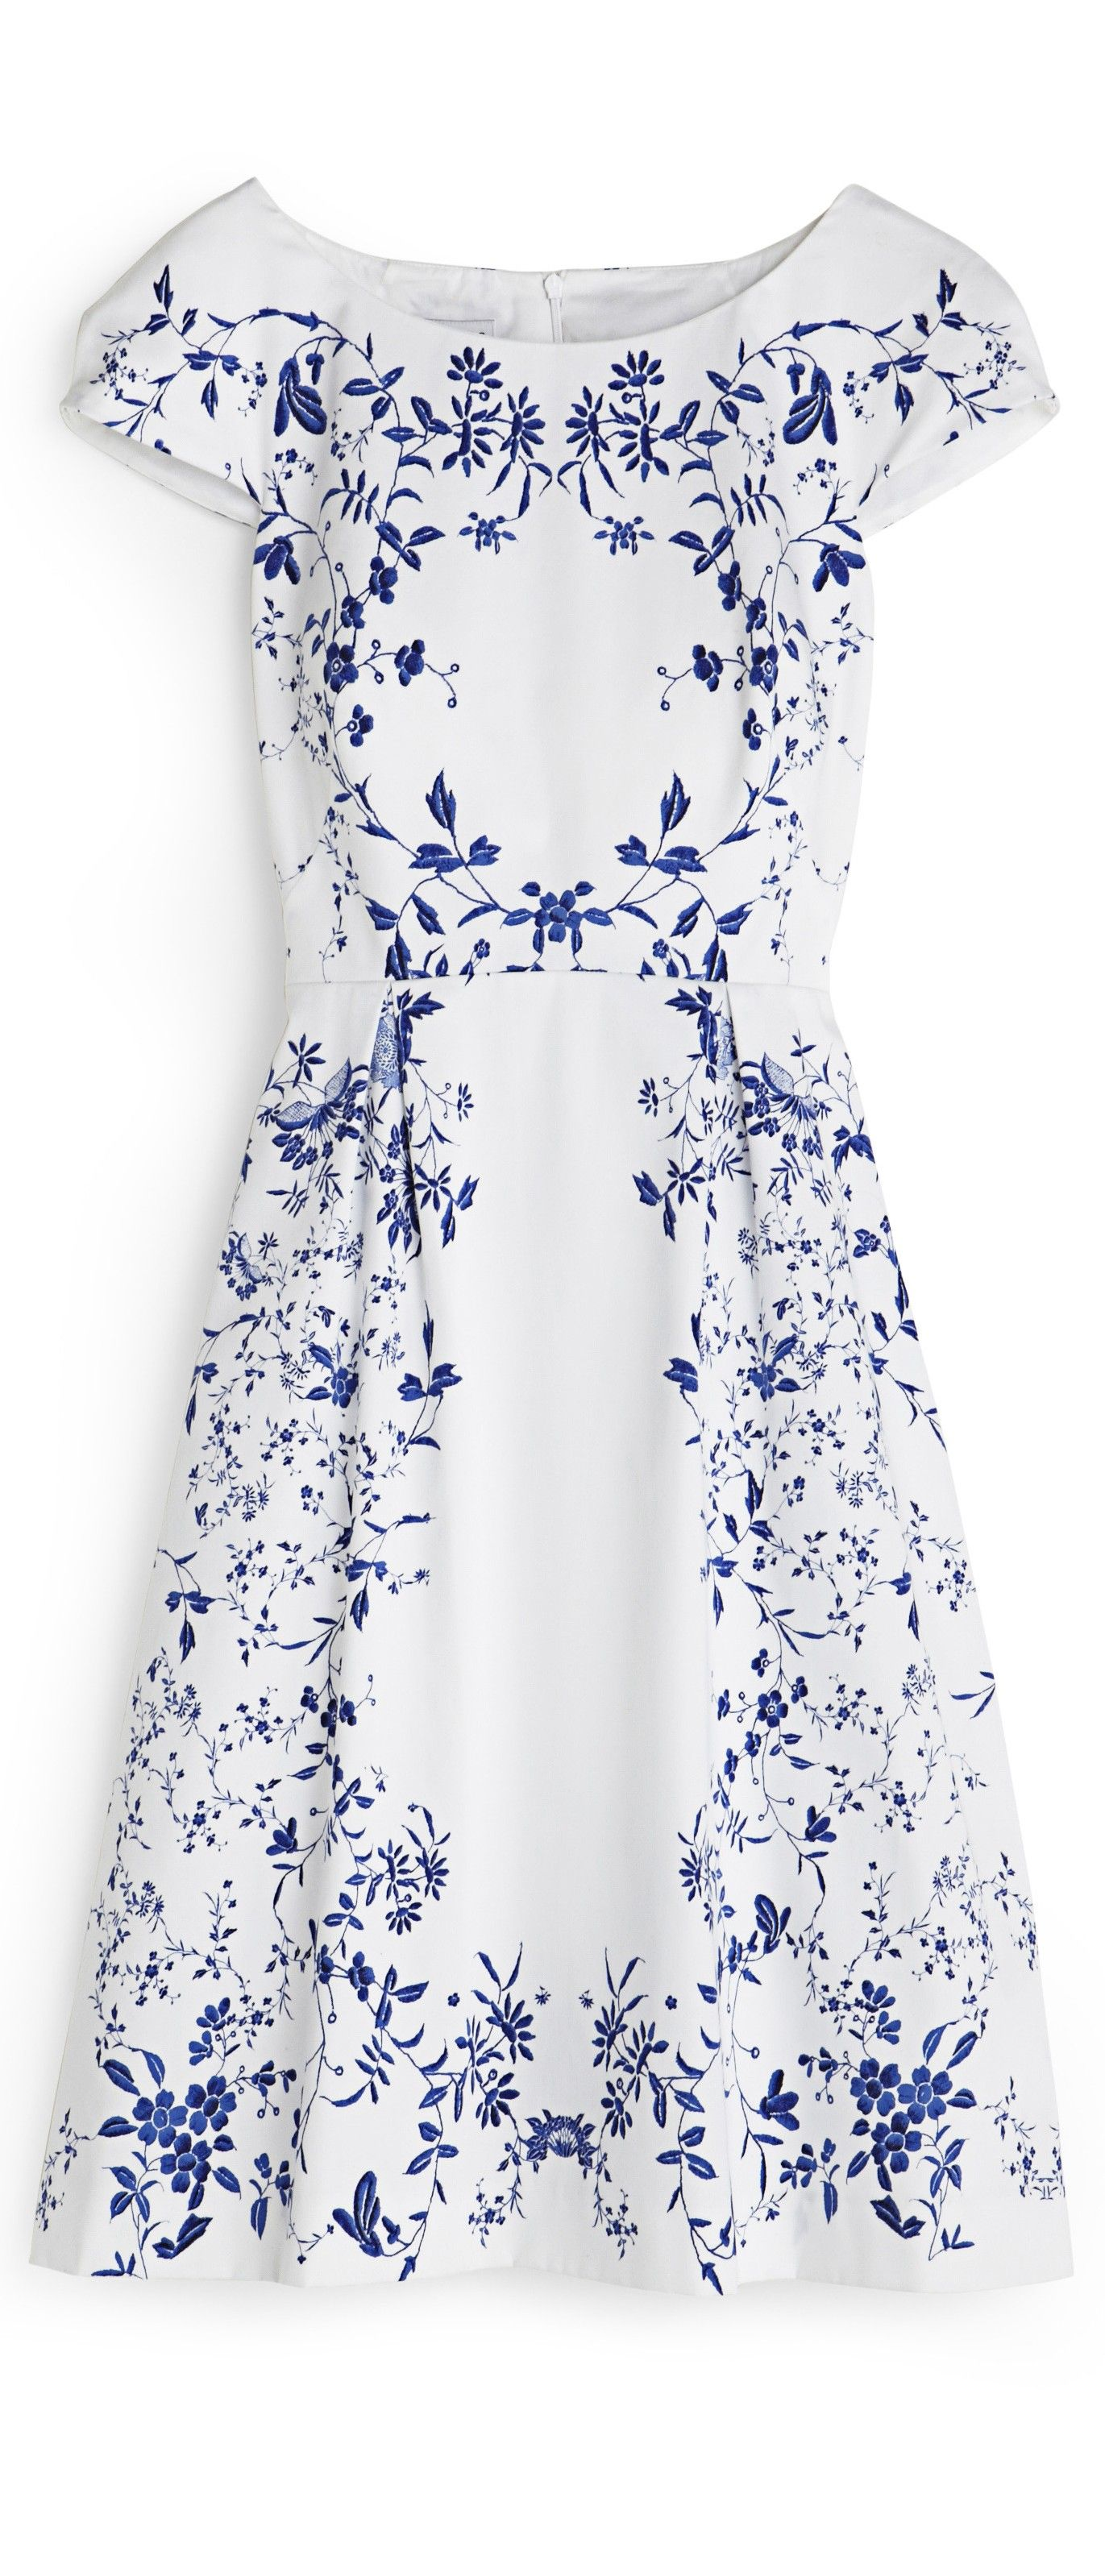 Blue and white floral wedding dress for older brides hobbs prshots